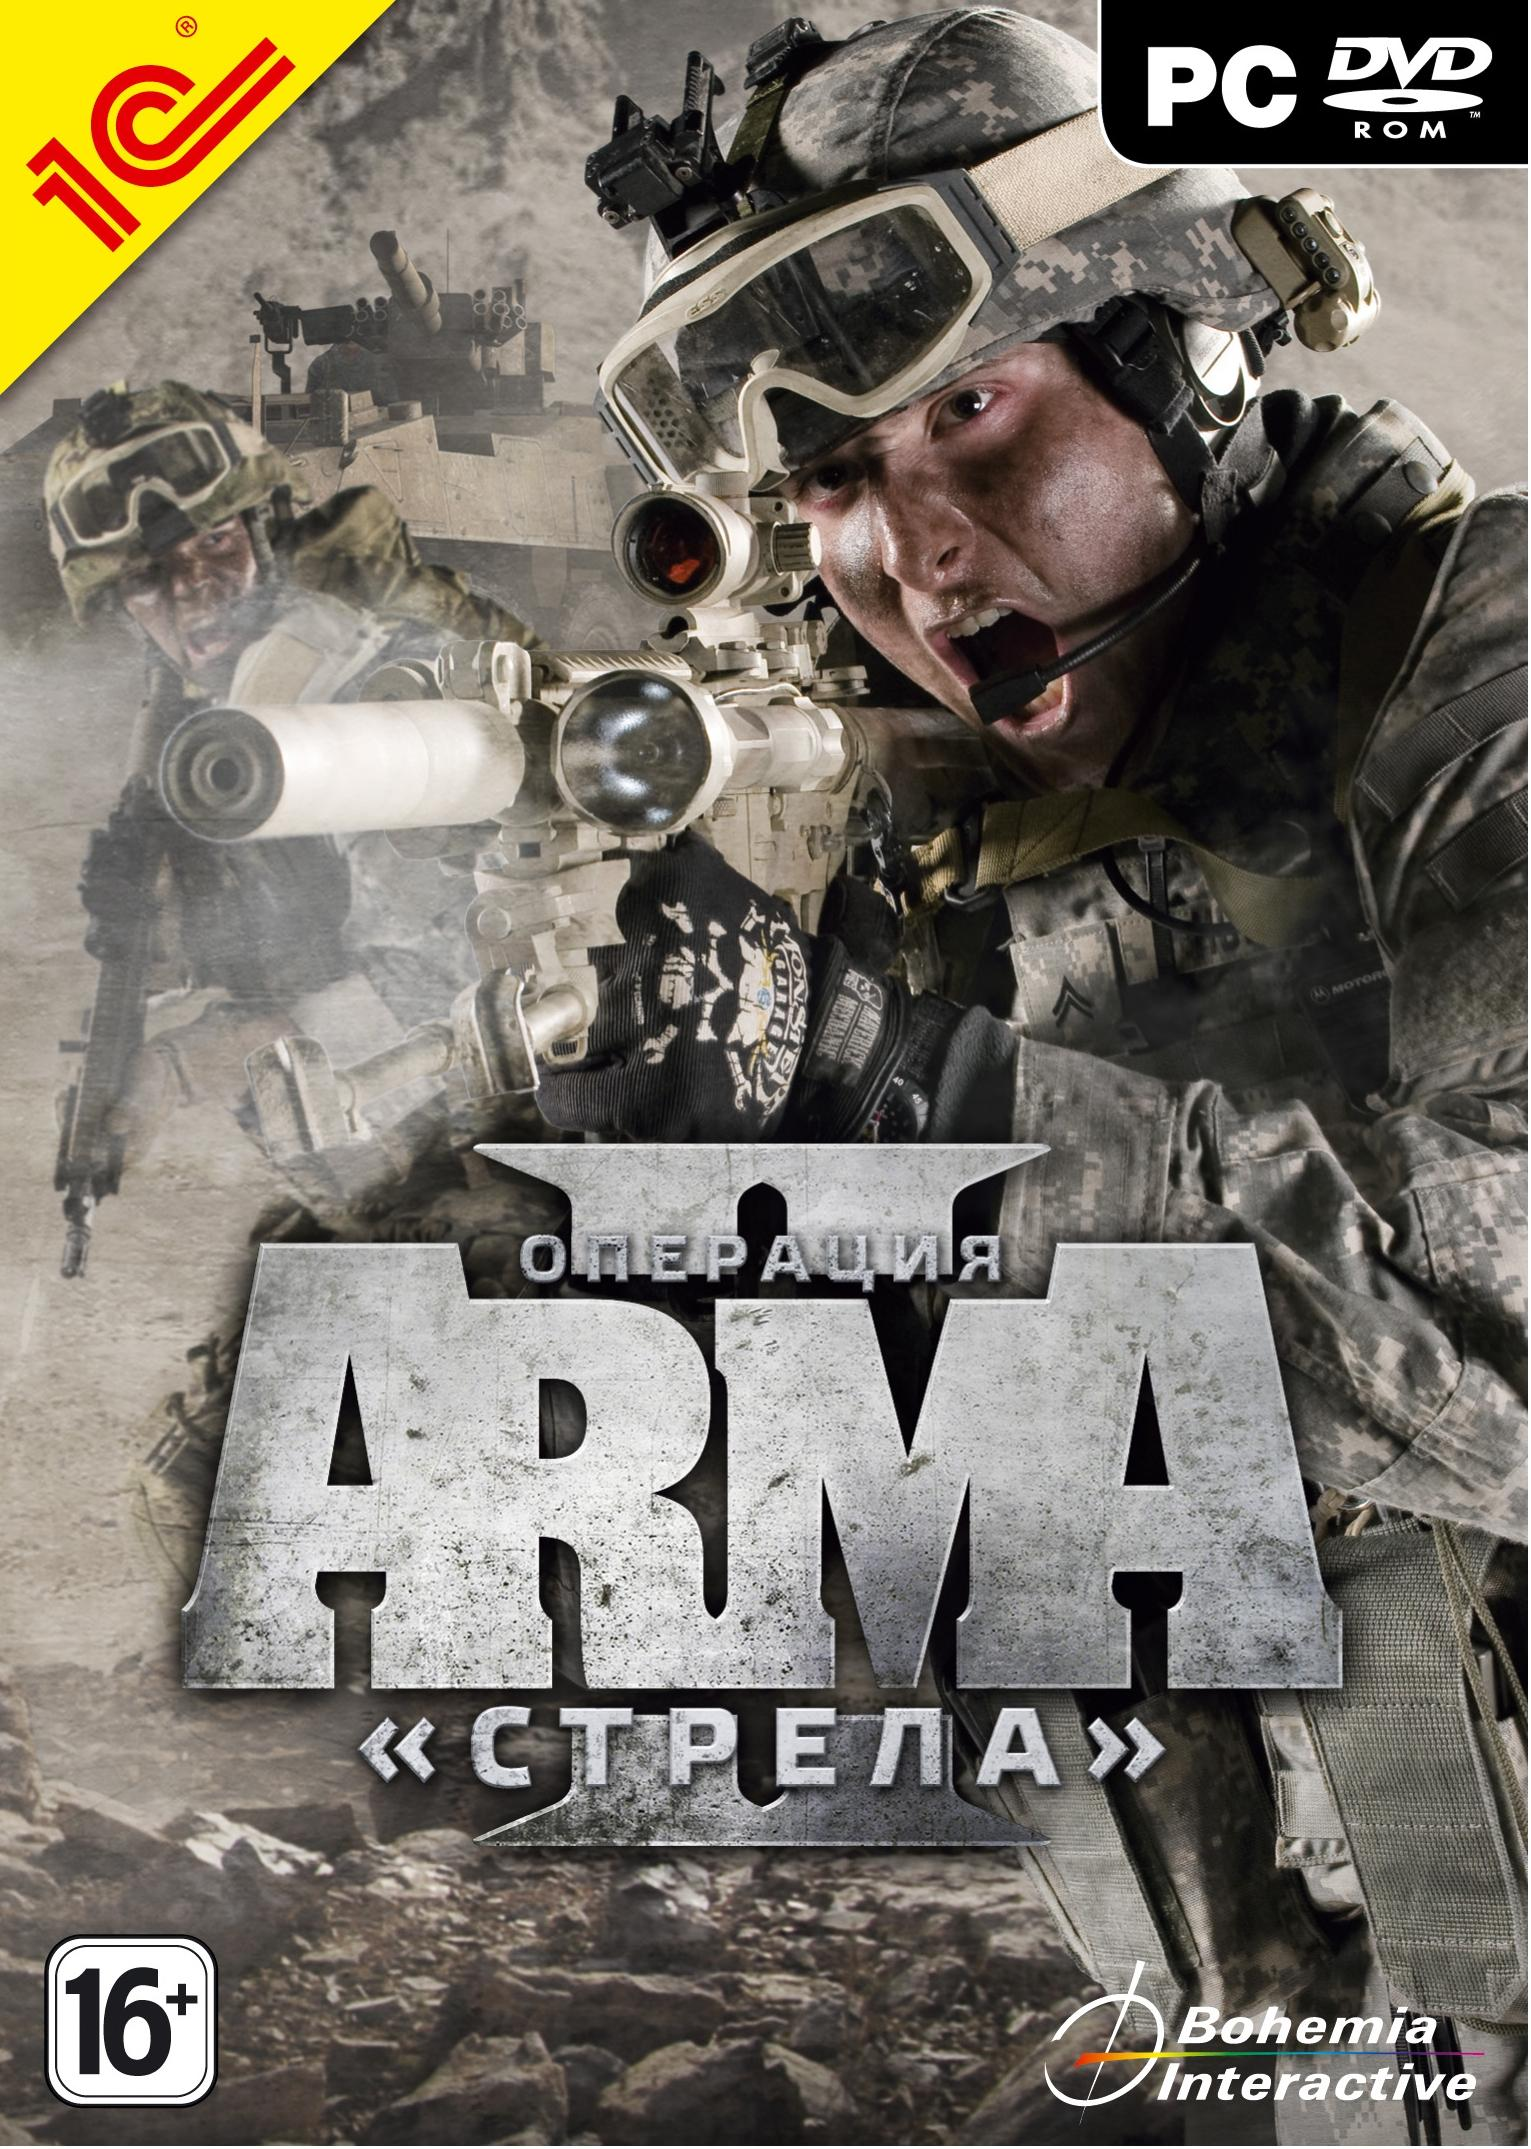 ARMA II 2 : ОПЕРАЦИЯ «СТРЕЛА»  (STEAM KEY/ROW)